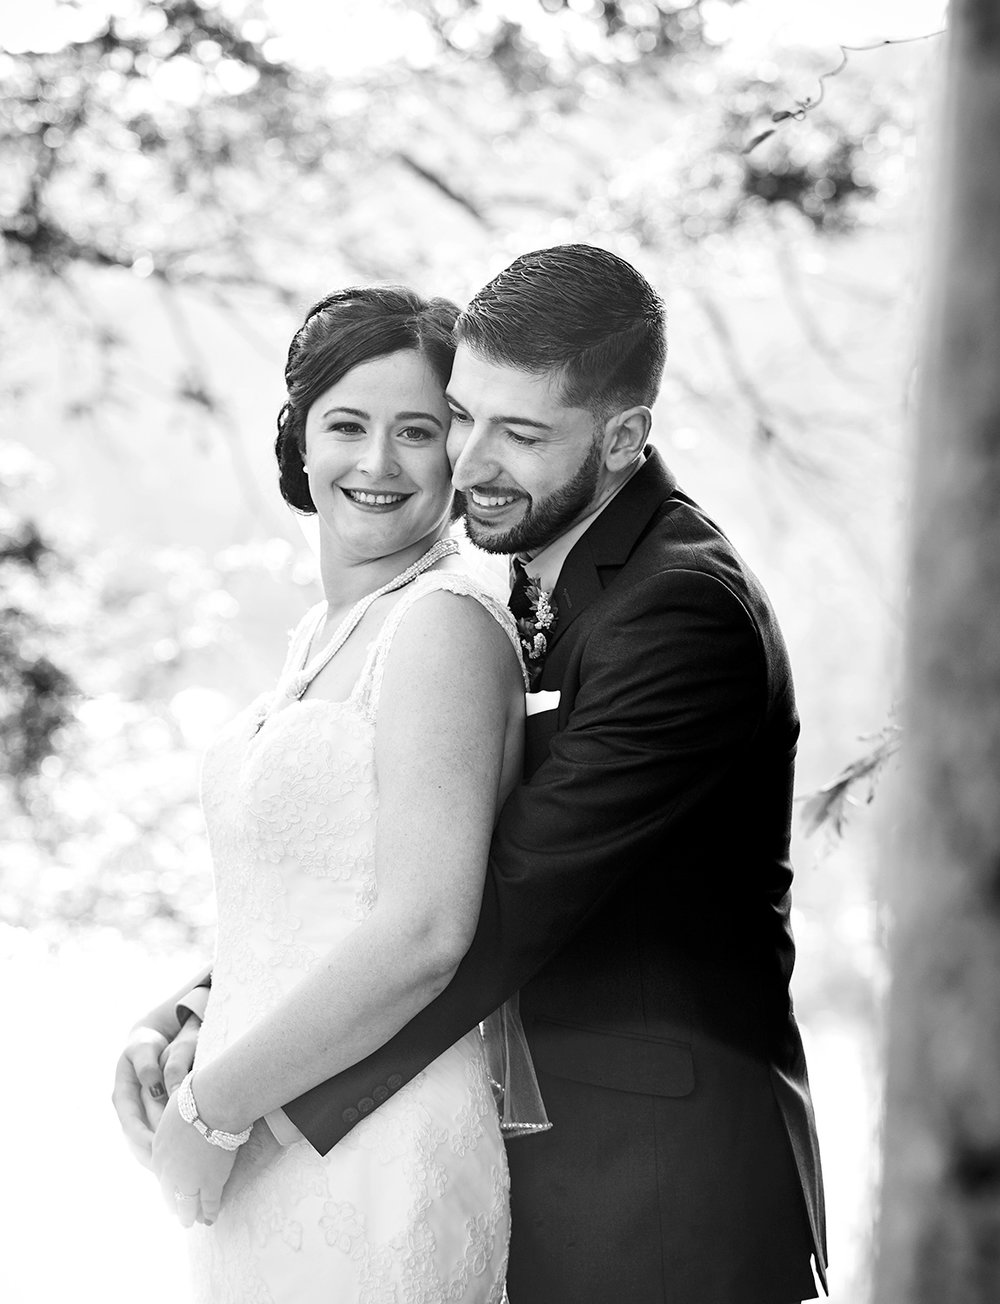 161119_ArrowParkLake&LodgeWedding_By_BriJohnsonWeddings_0061.jpg